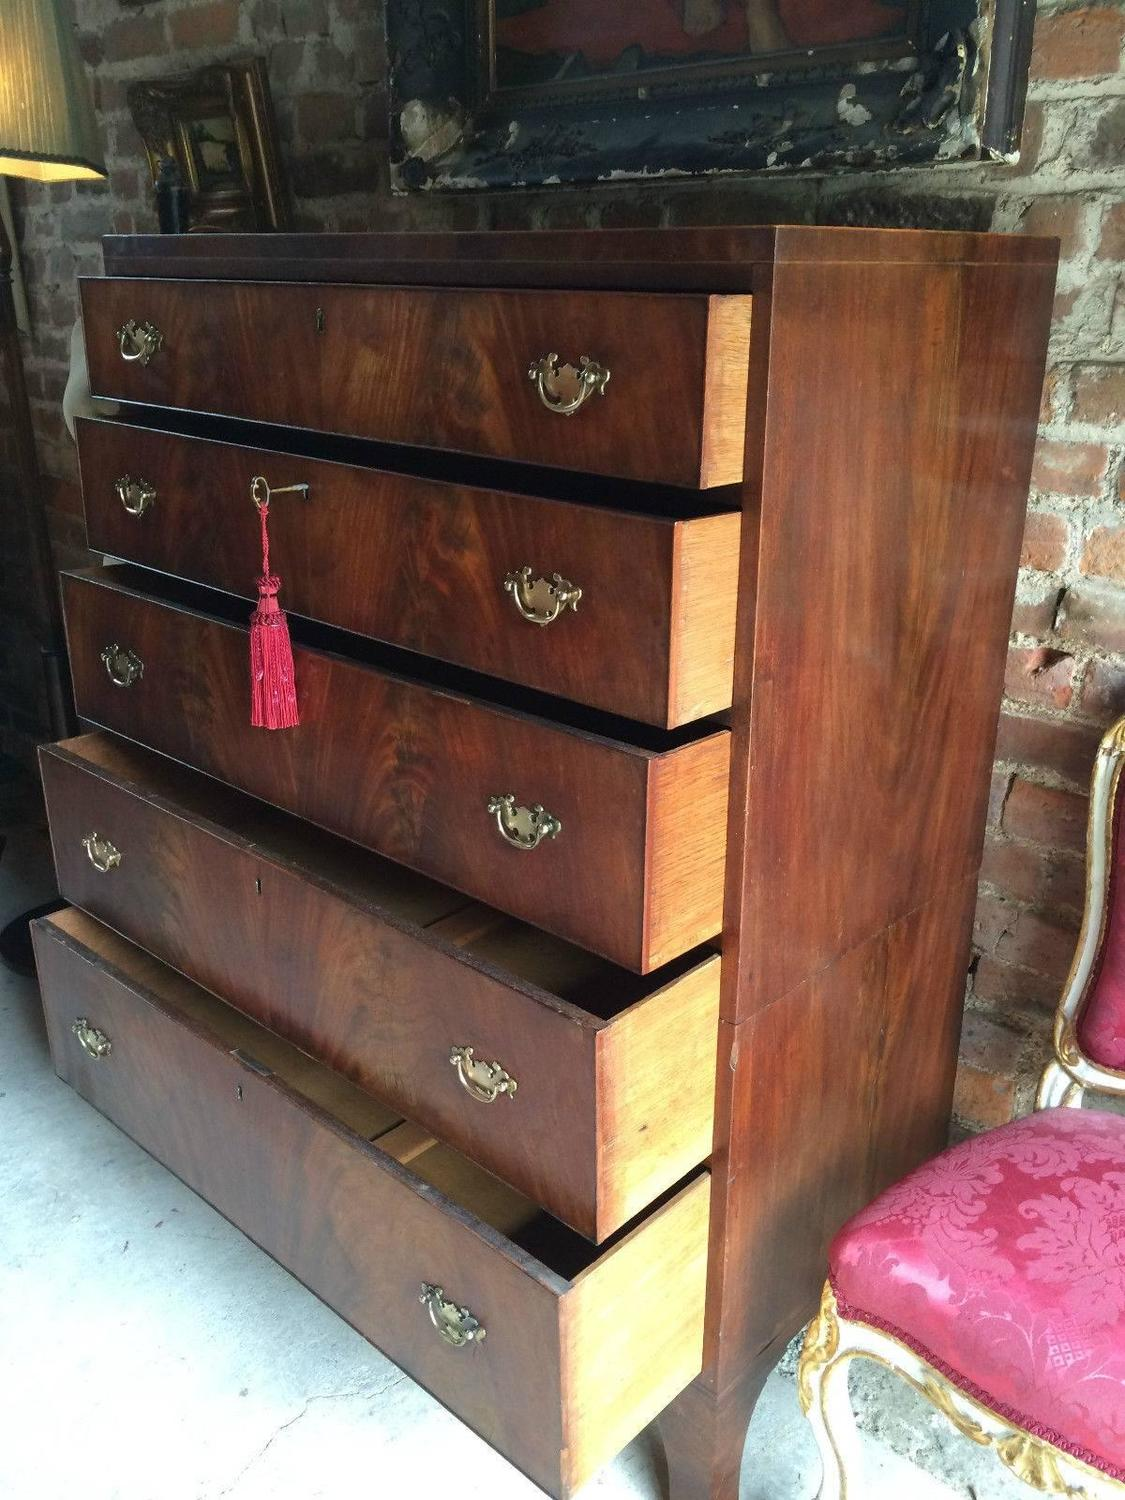 #B7155F George III Antique Tallboy Chest Of Drawers Dresser  with 1125x1500 px of Highly Rated Vintage Tallboy Chest Of Drawers 15001125 picture/photo @ avoidforclosure.info